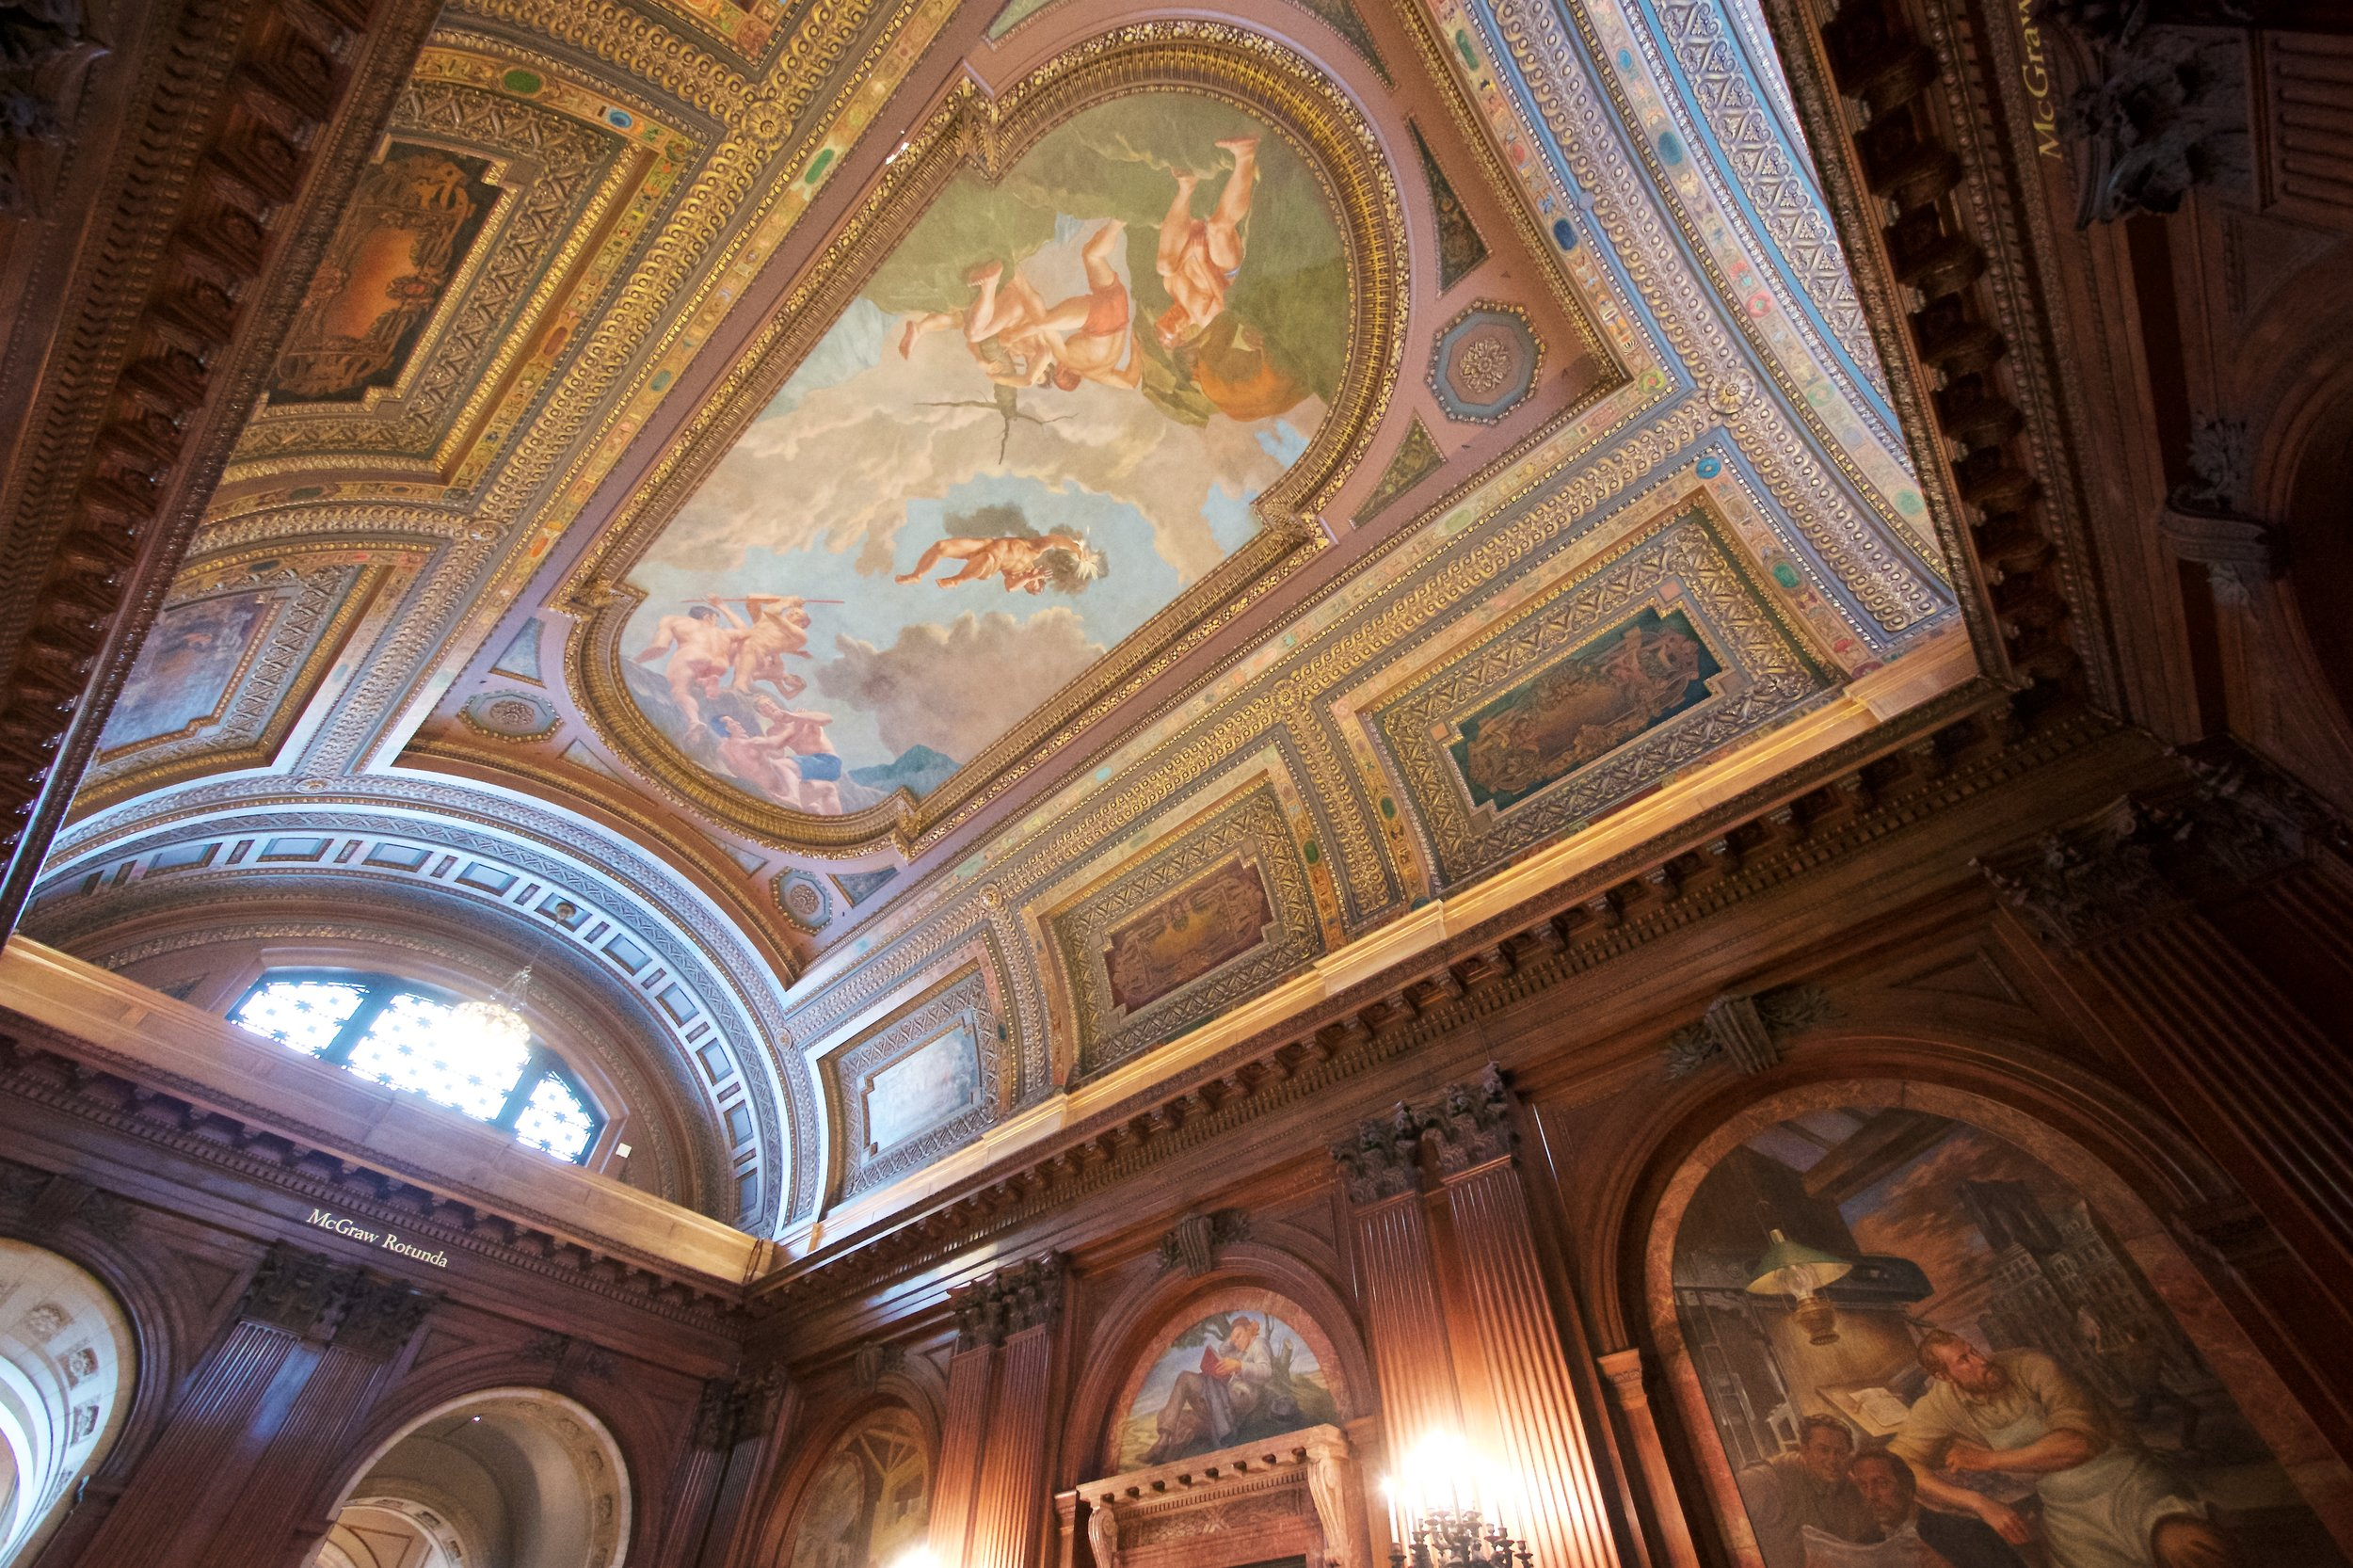 McGraw Rotunda, New York Public Library